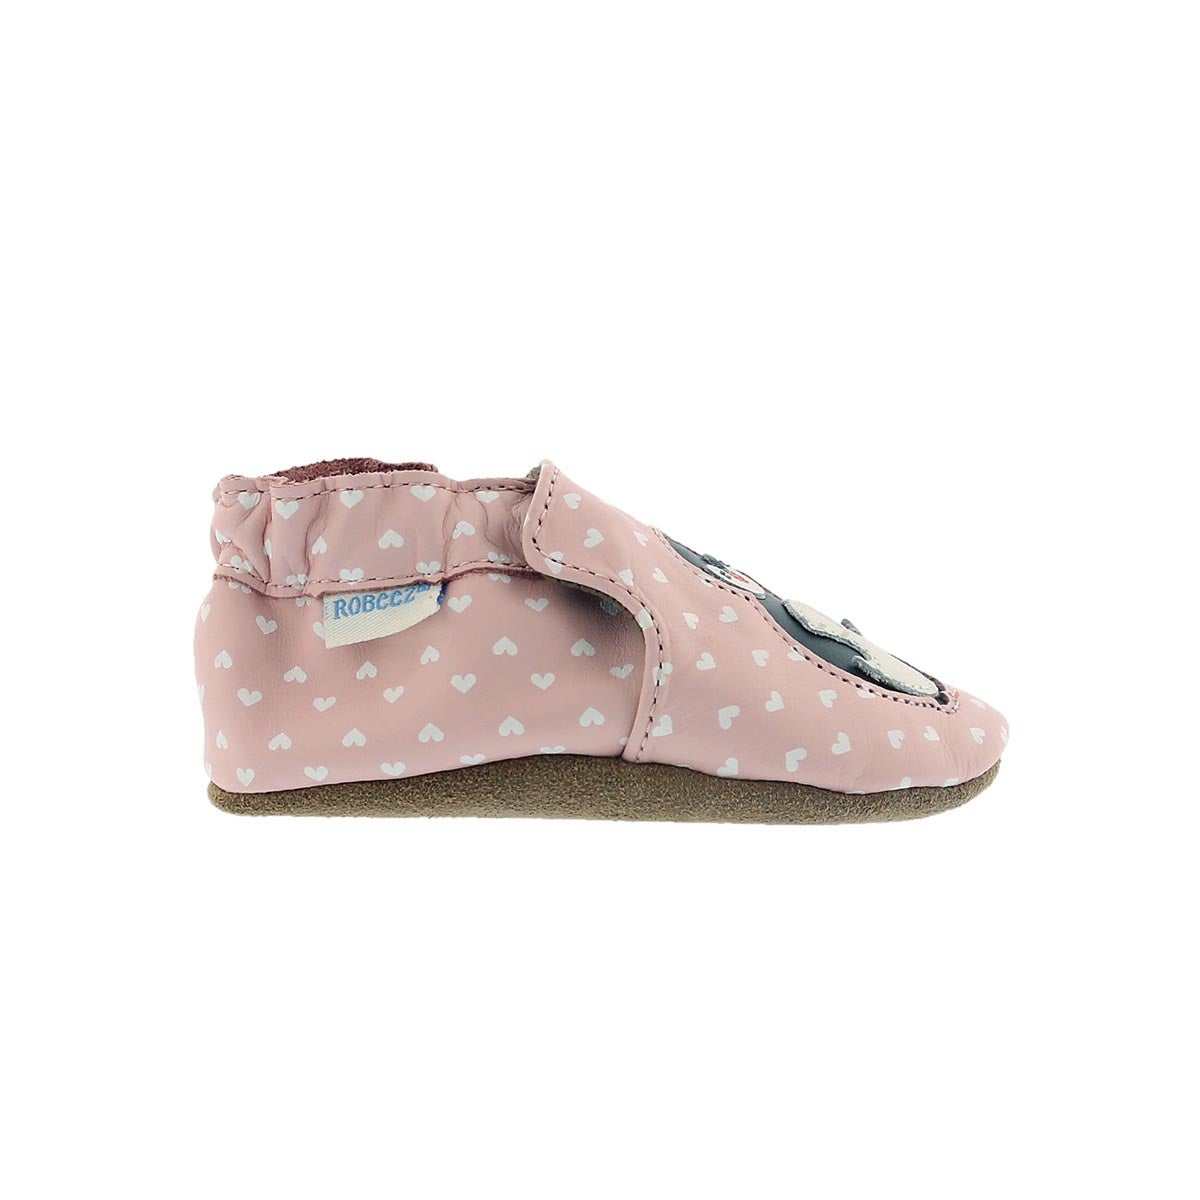 Inf Piper Penguin pastel pink slipper